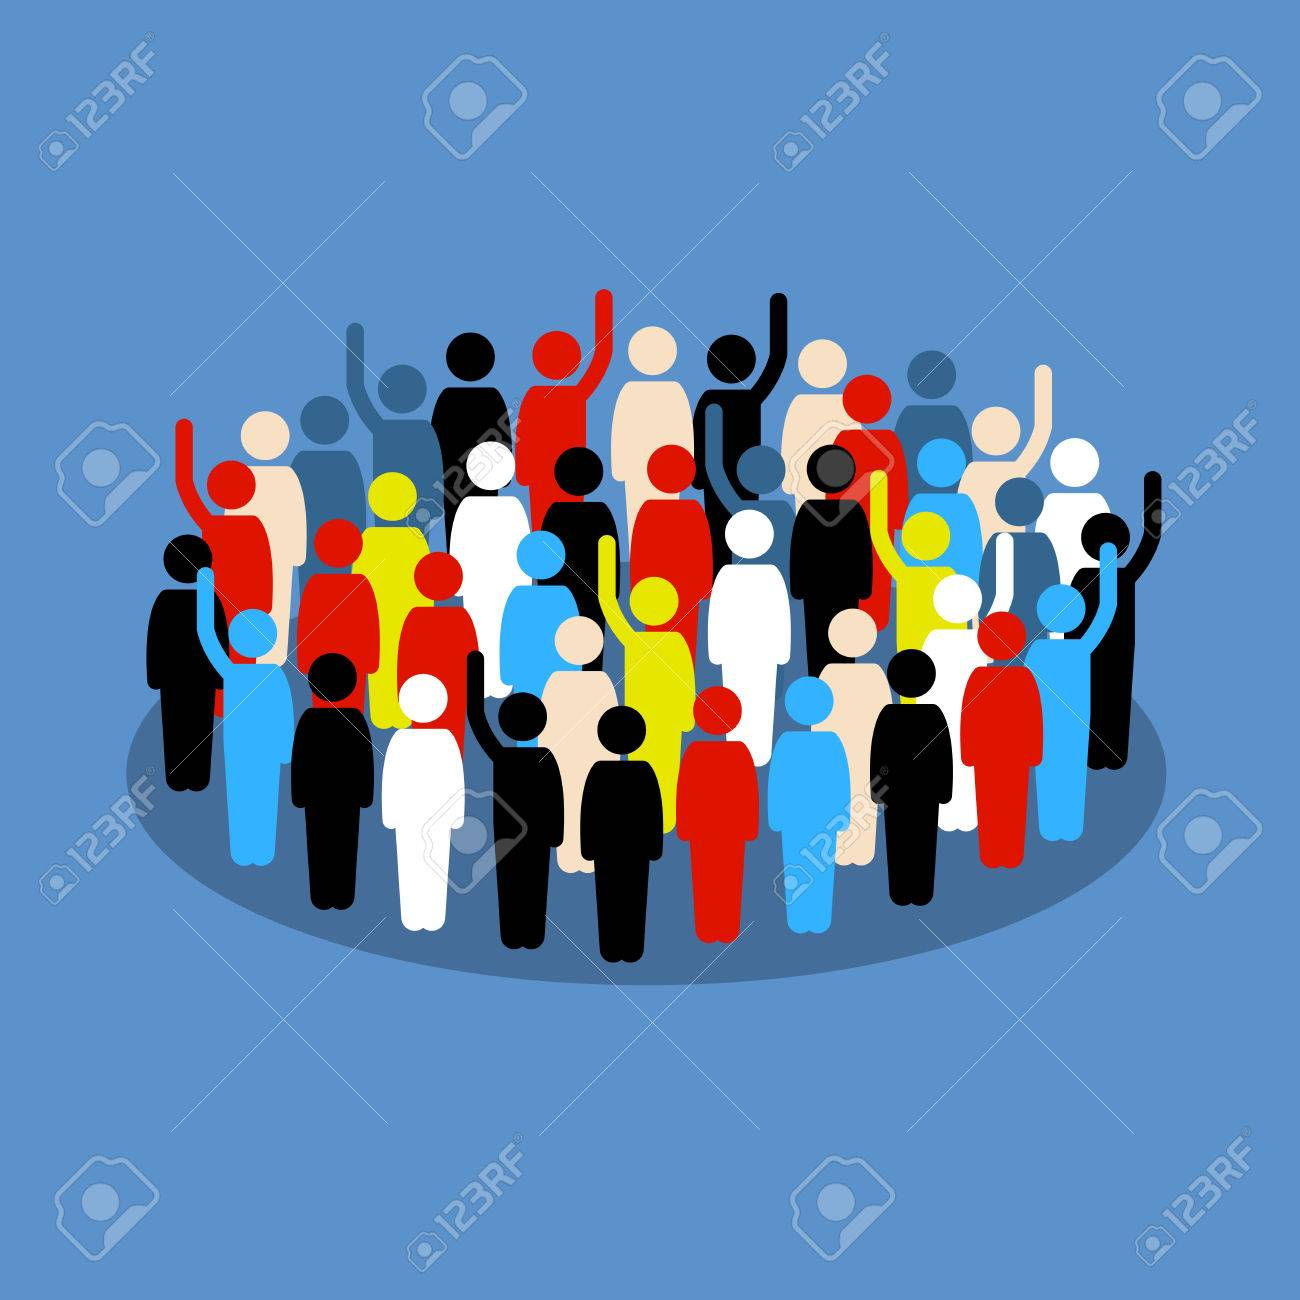 People in the crowd raising hand to show support and vote. Vector artwork depicts society, differences, democracy, and public voting. - 86108573